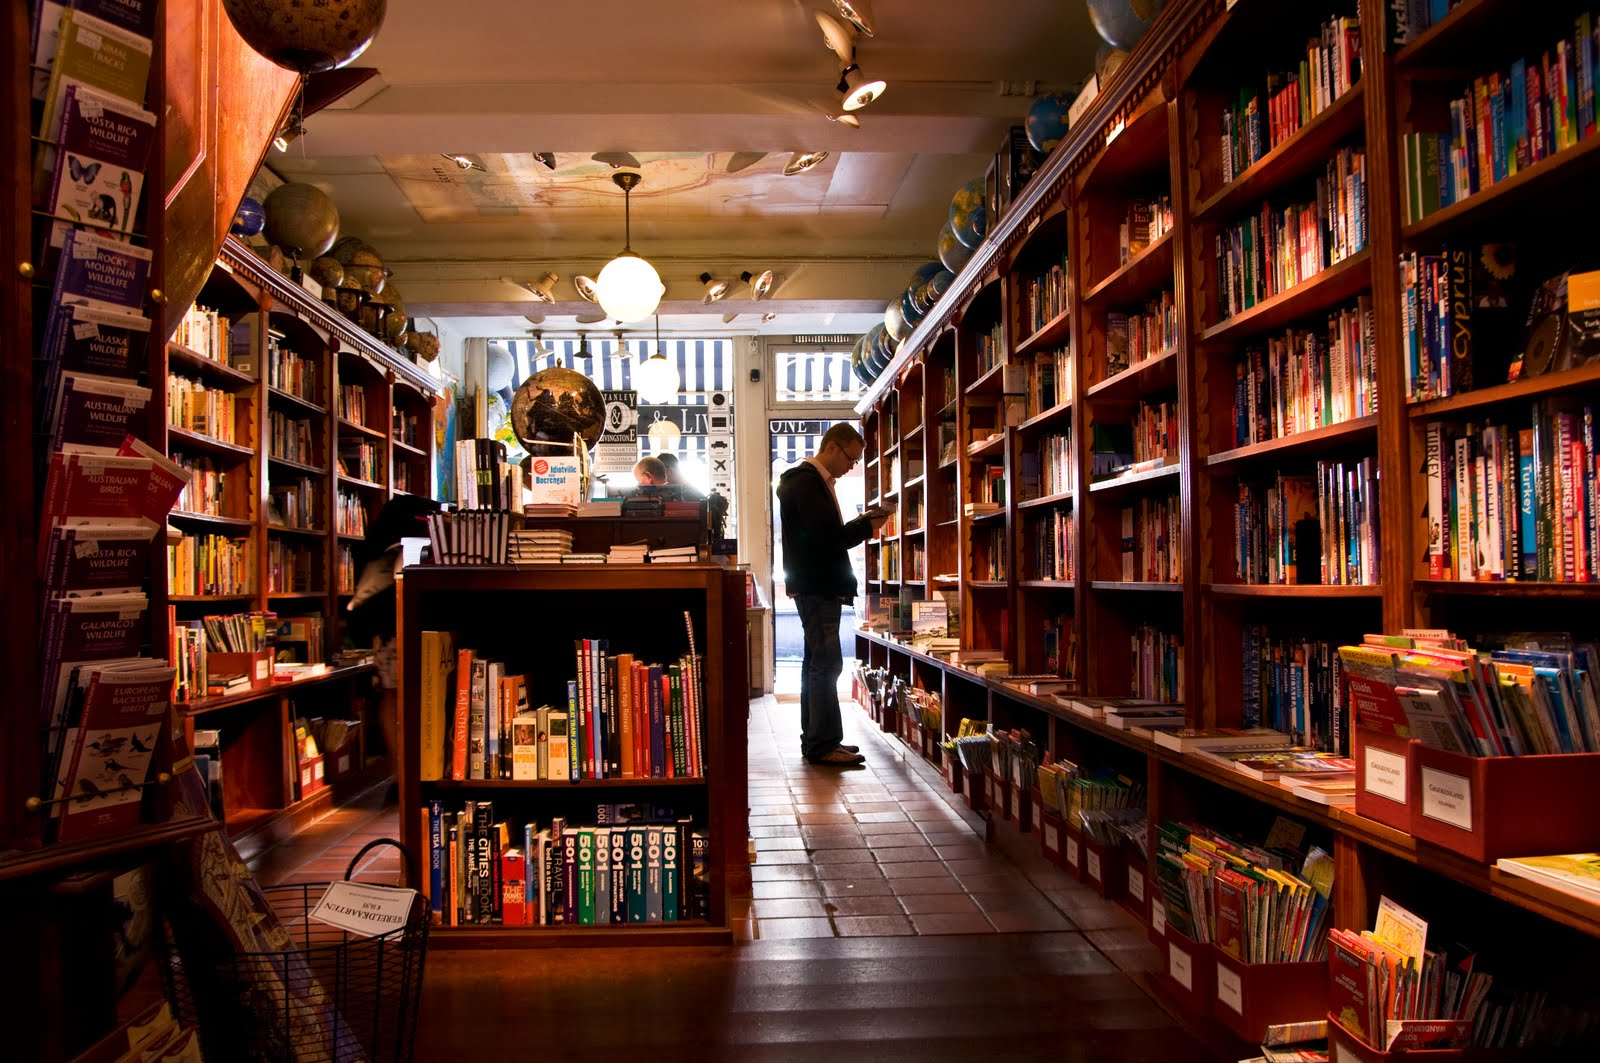 You can find Lithic Press titles at these rad bookstores!